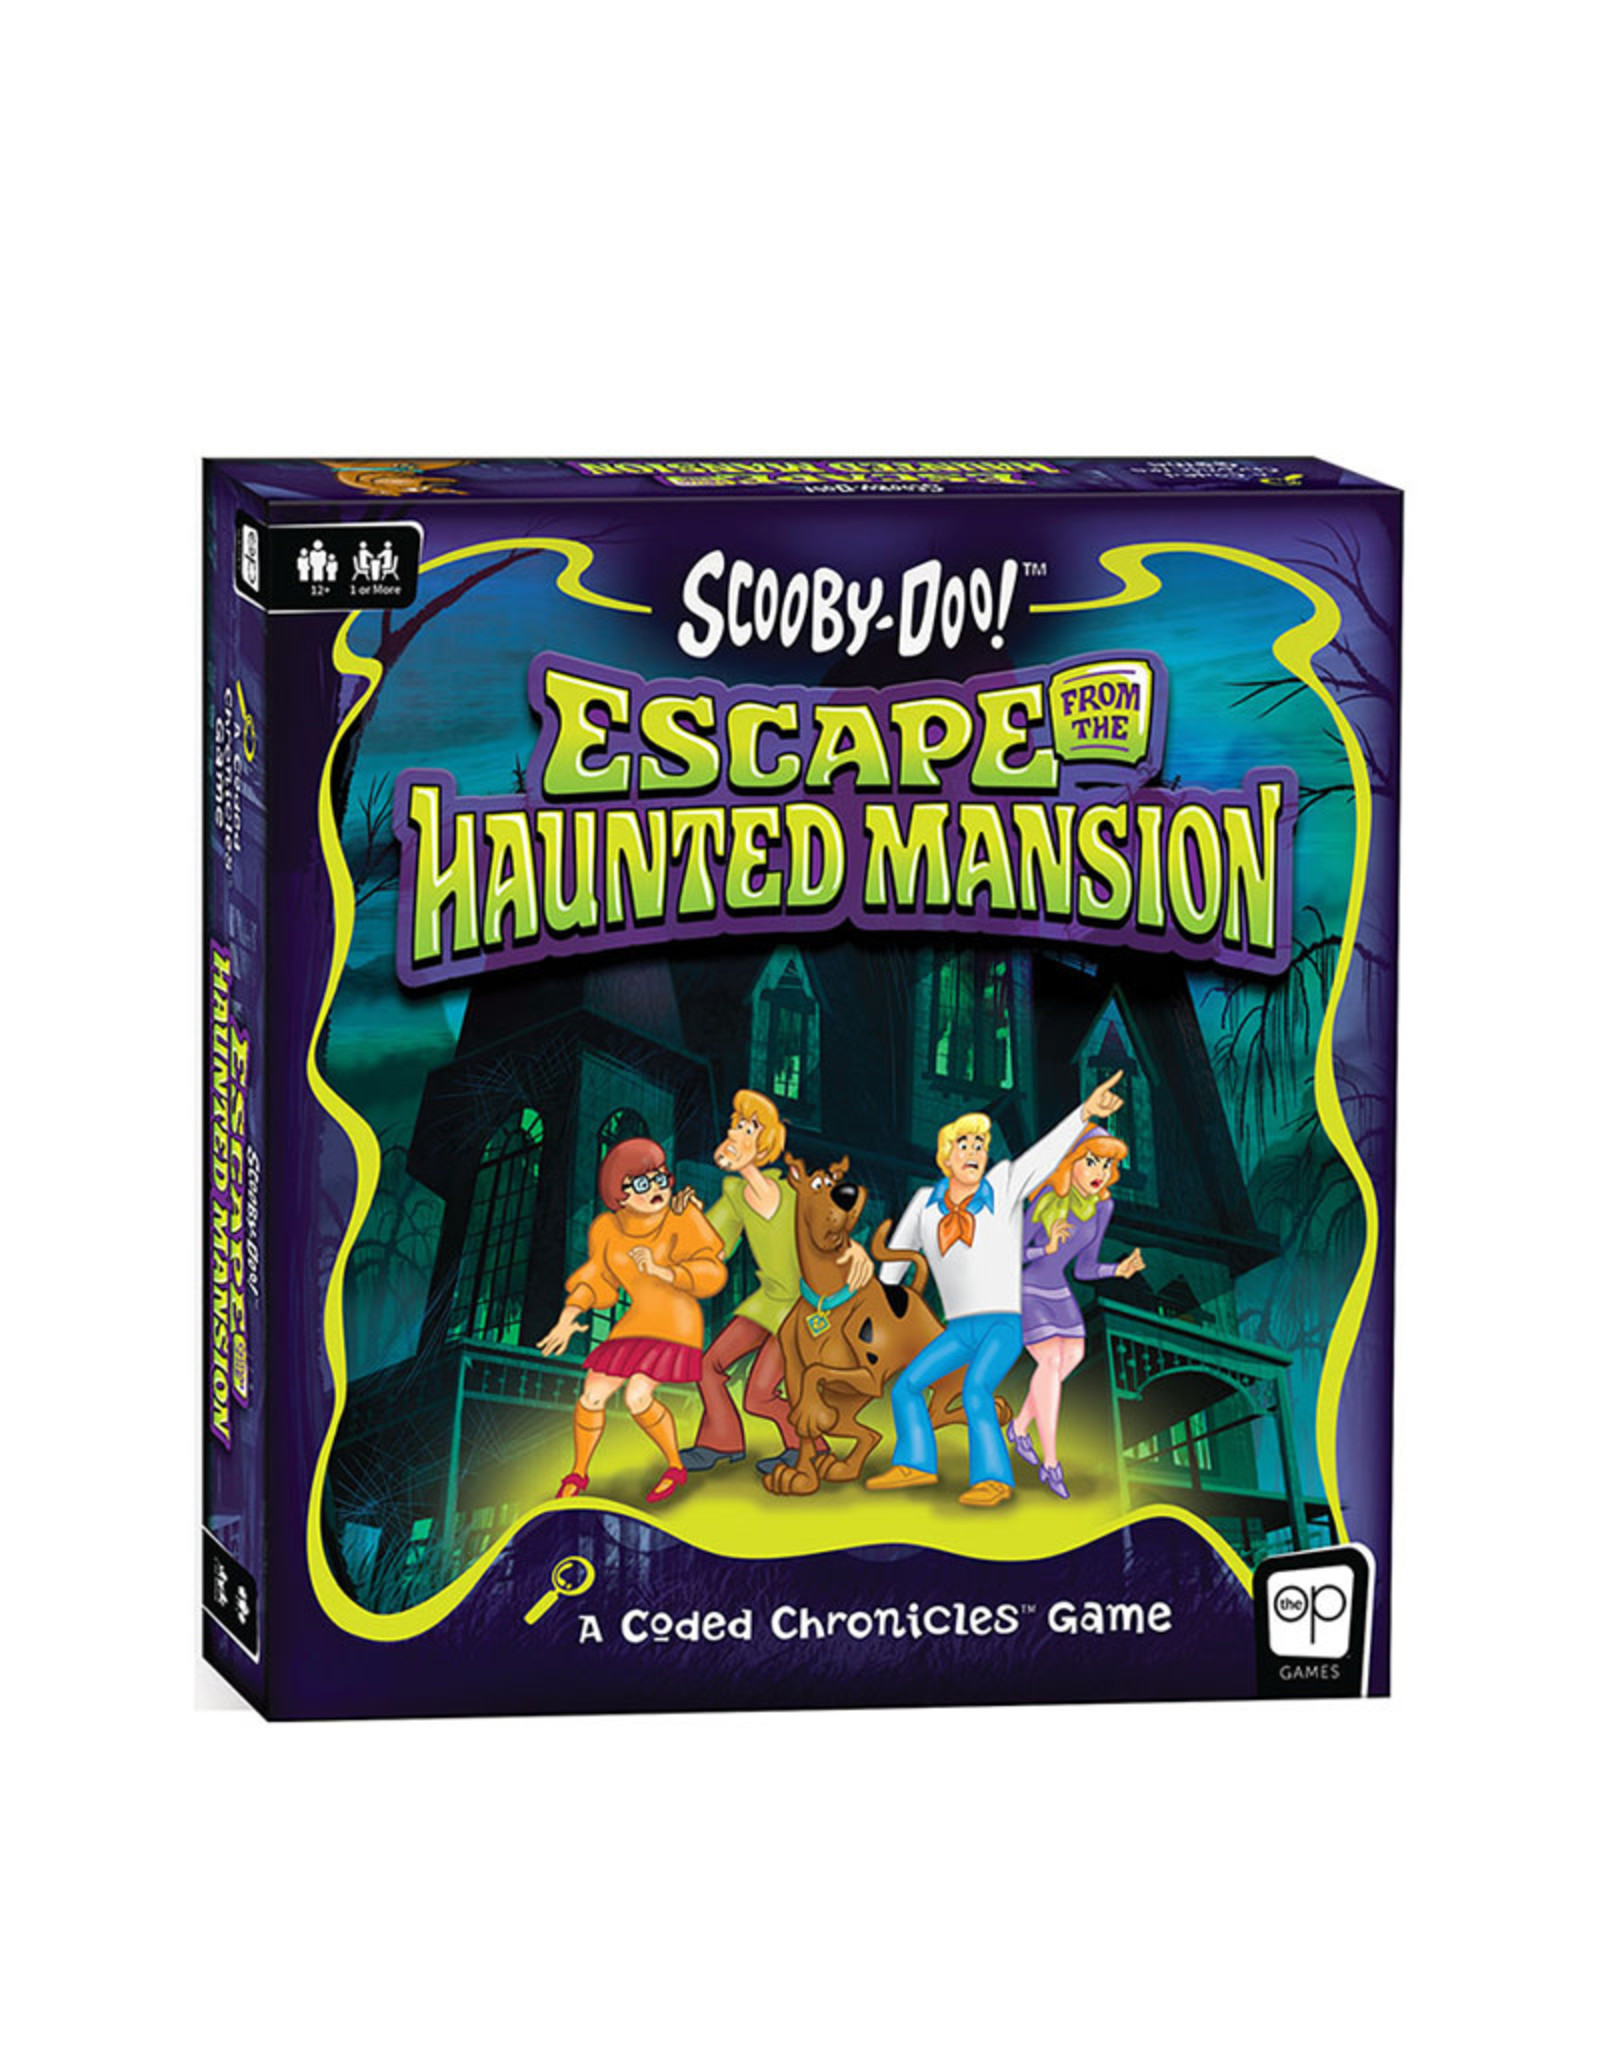 The OP Scooby-Doo: Escape from the Haunted Mansion